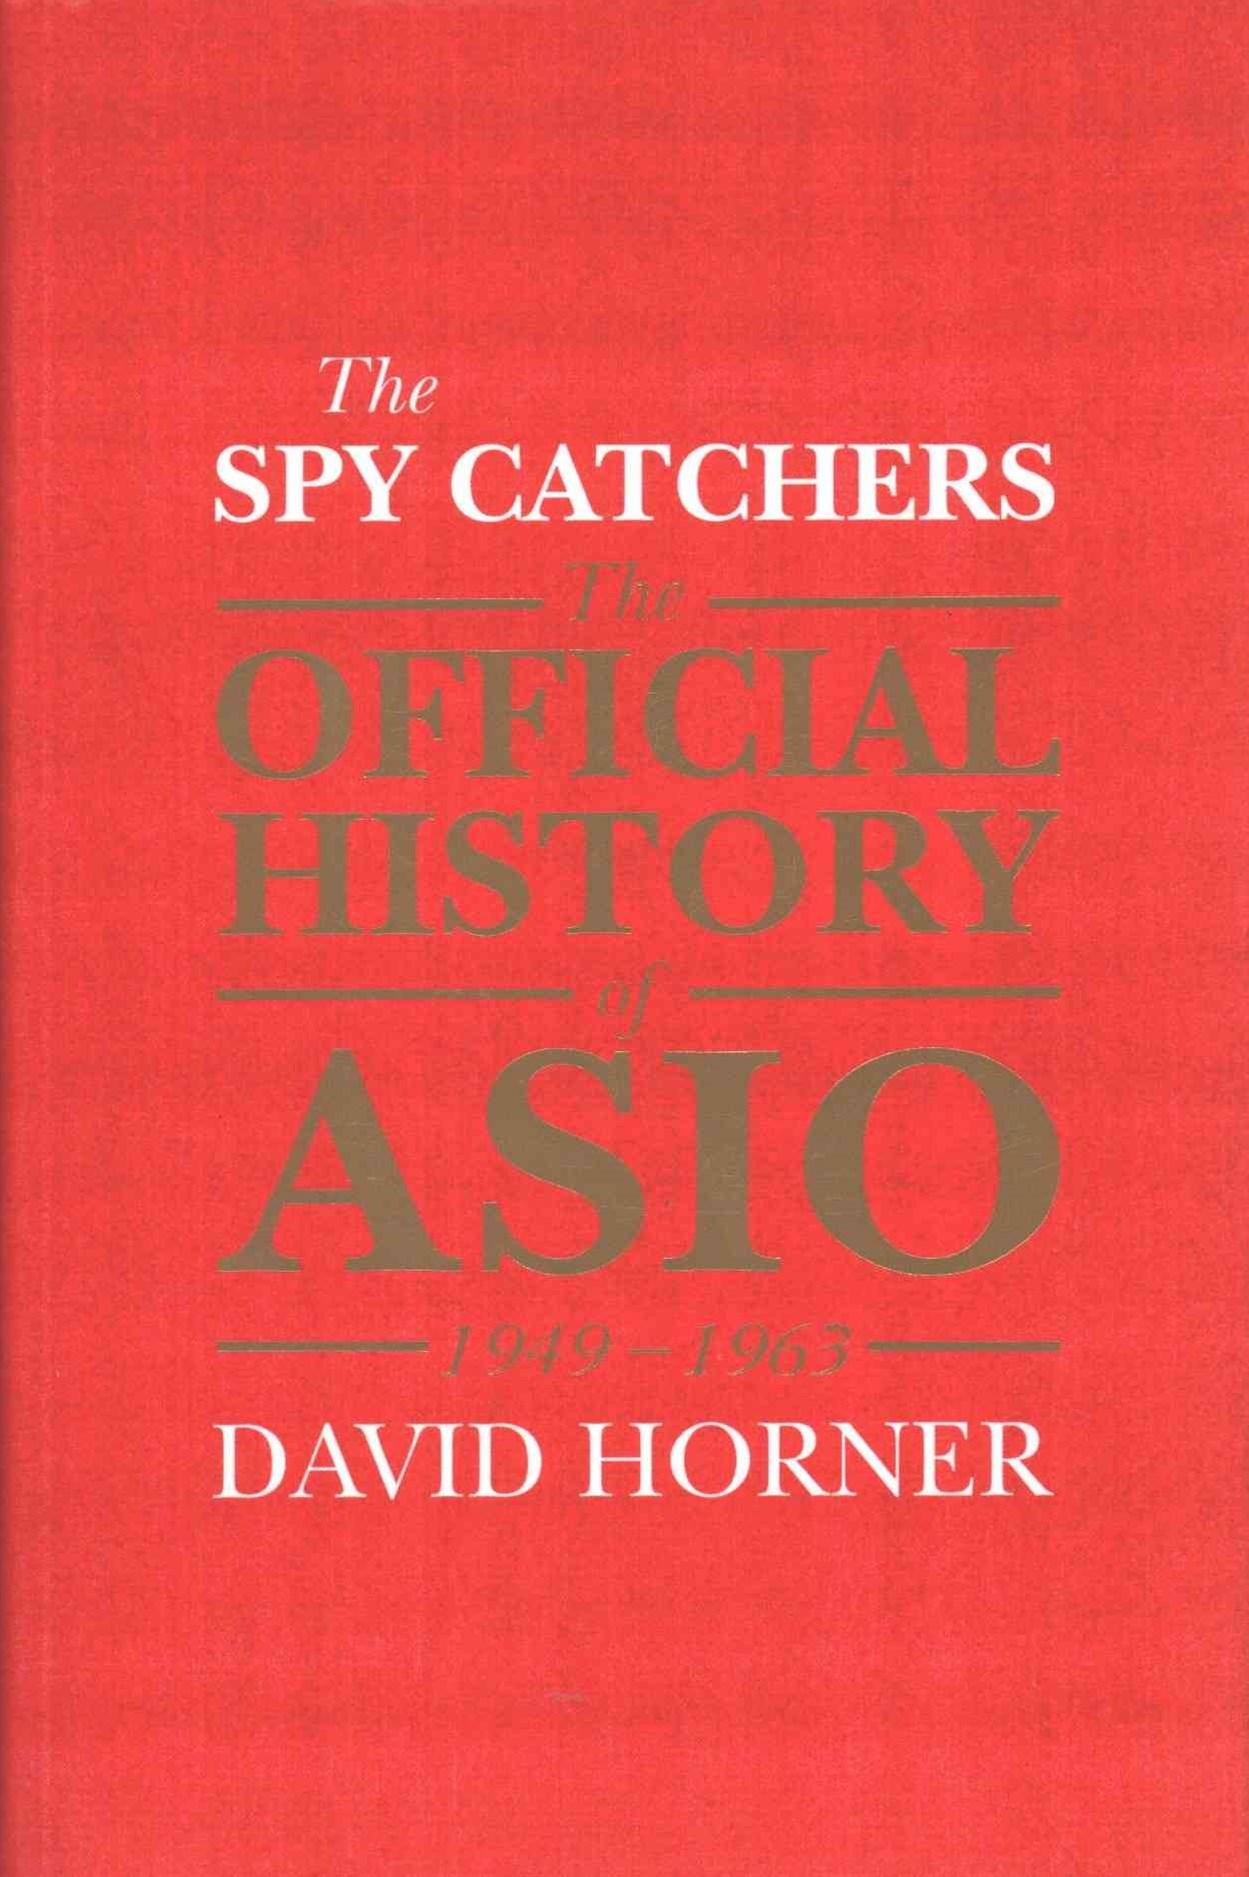 The Spy Catchers